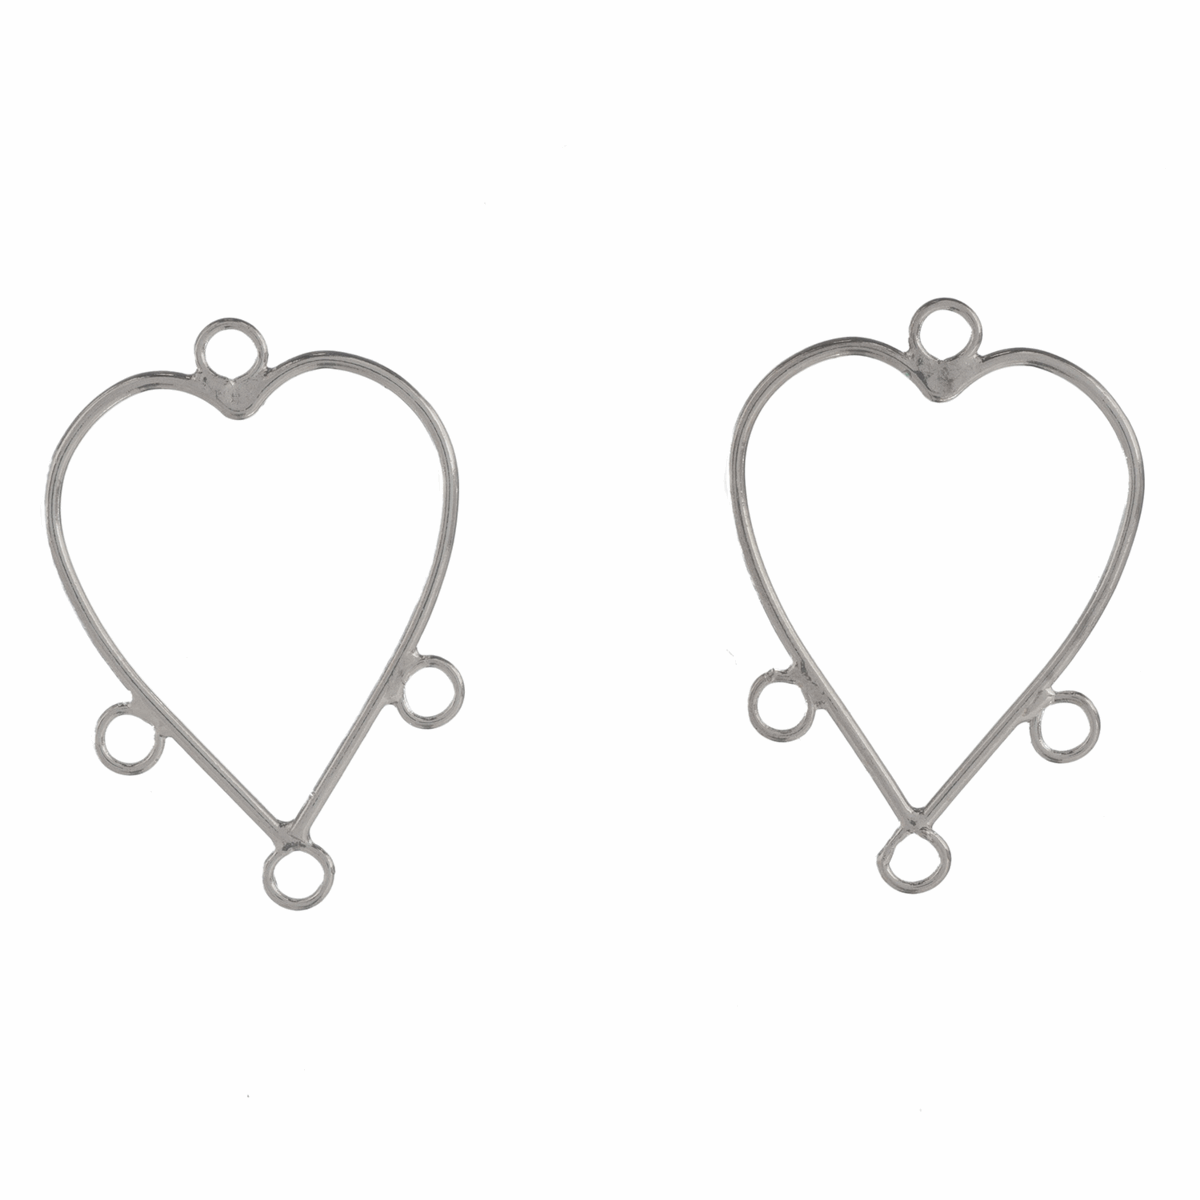 Picture of Heart Earrings with Loops: Silver: 5 Packs of 2